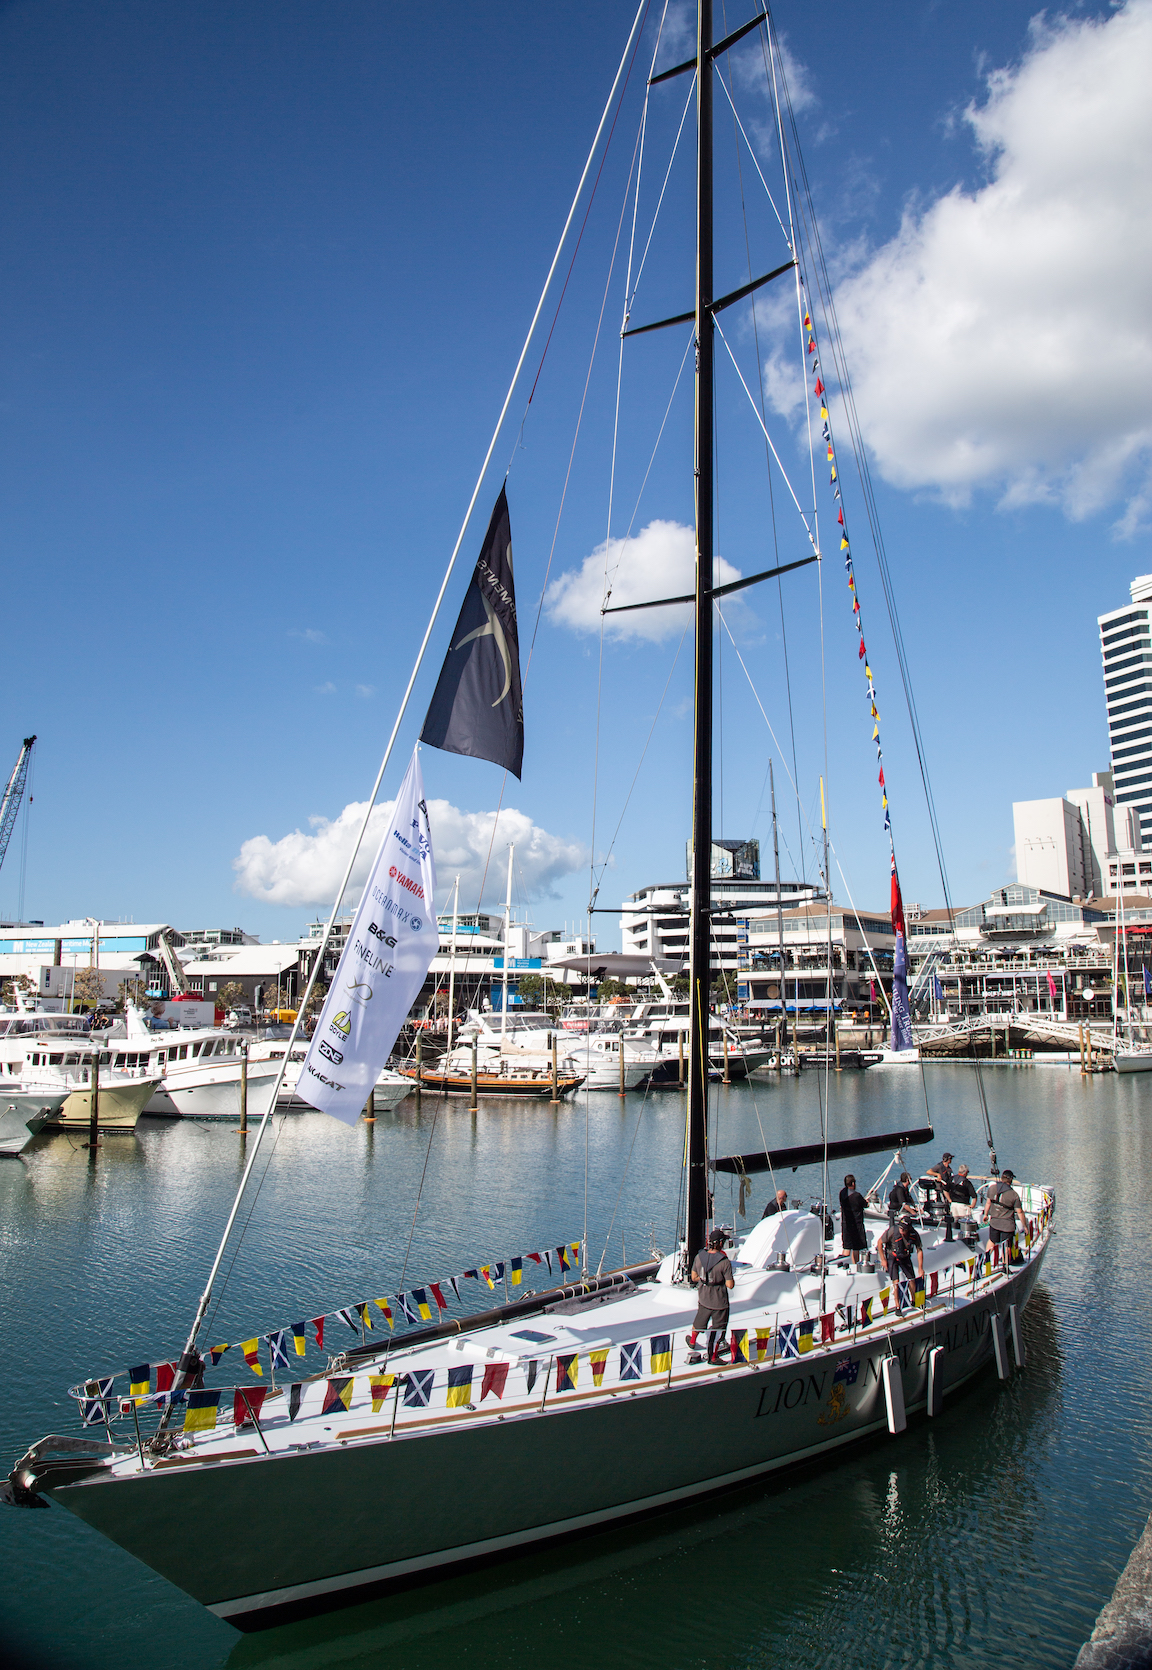 Yachting Developments relaunches 24m Lion New Zeland after